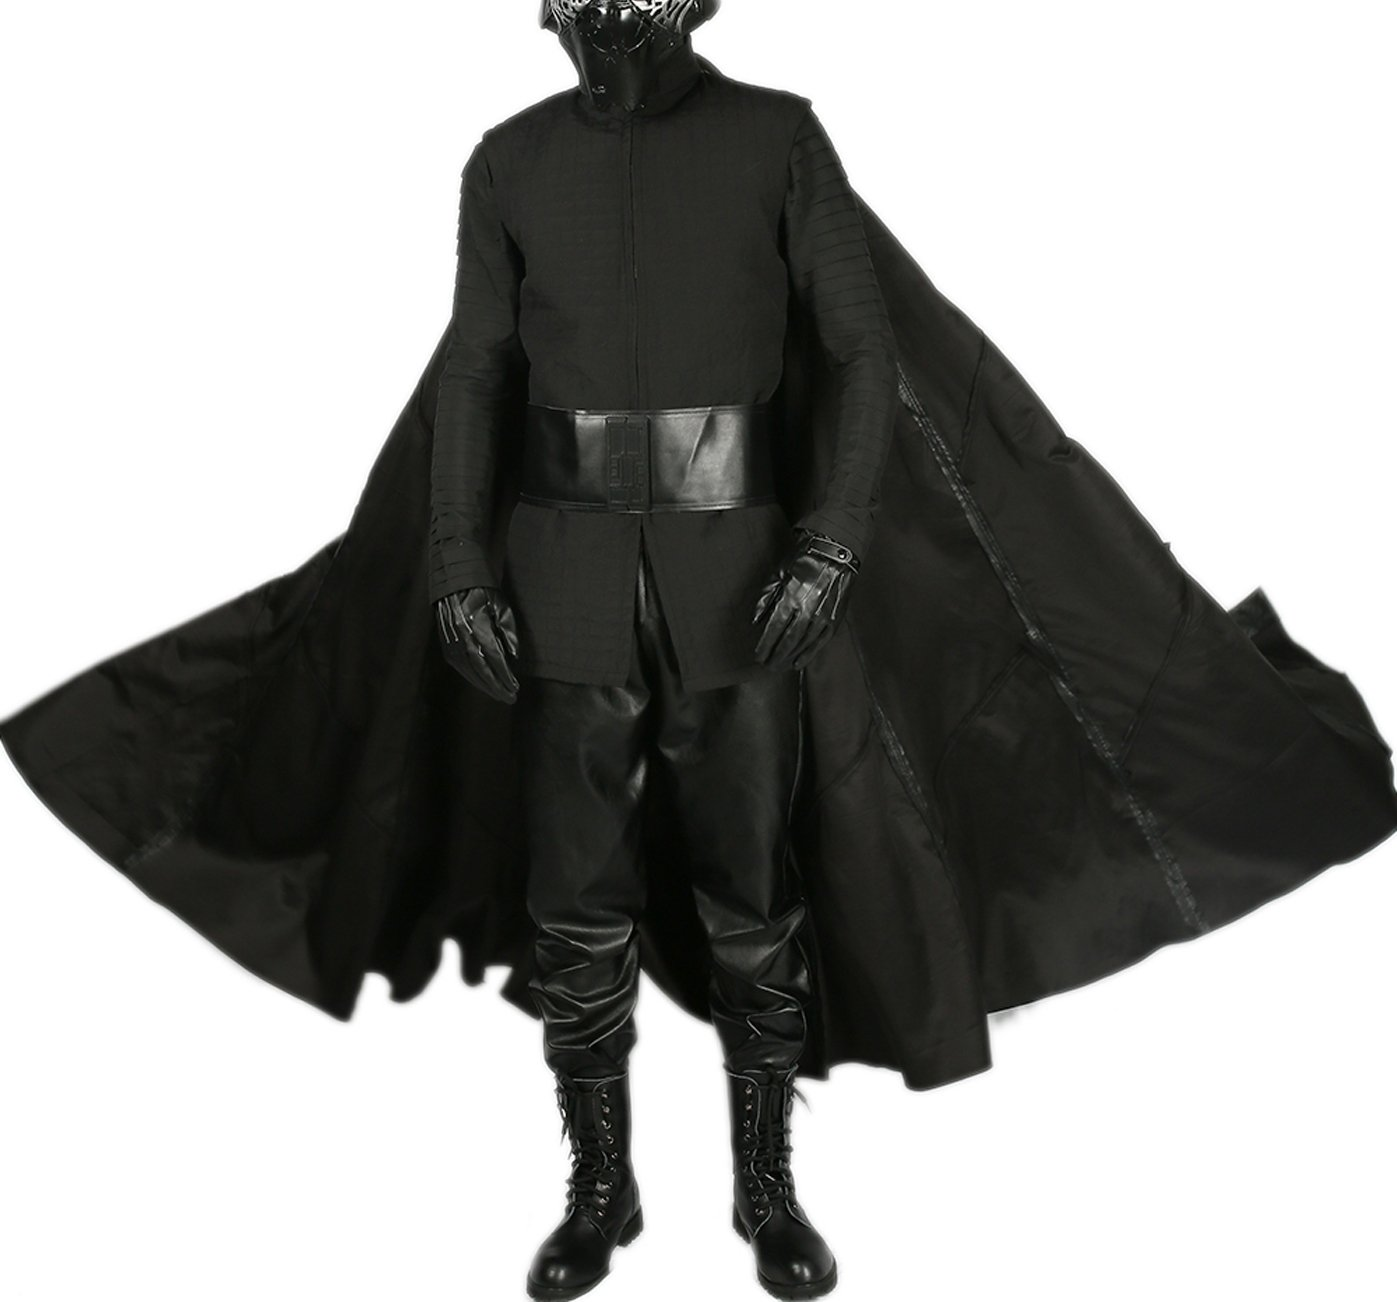 xcoser Kylo Ren Costume Last Jedi SW 8 Cosplay Outfit Adult Full Suit Custom Made XL by xcoser (Image #1)